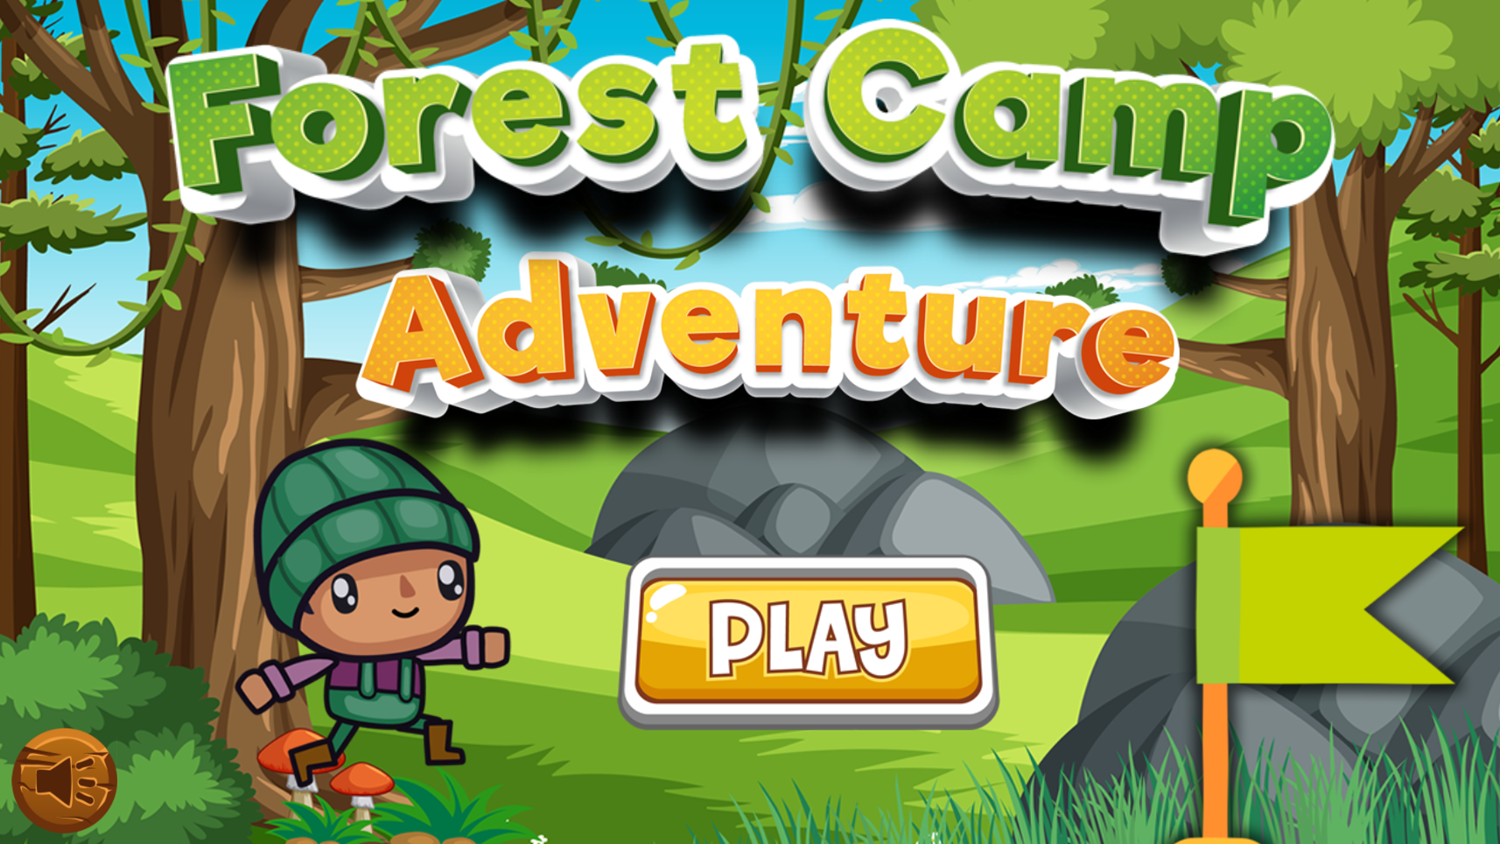 Forest Camp Adventure Game Welcome Screen Screenshot.